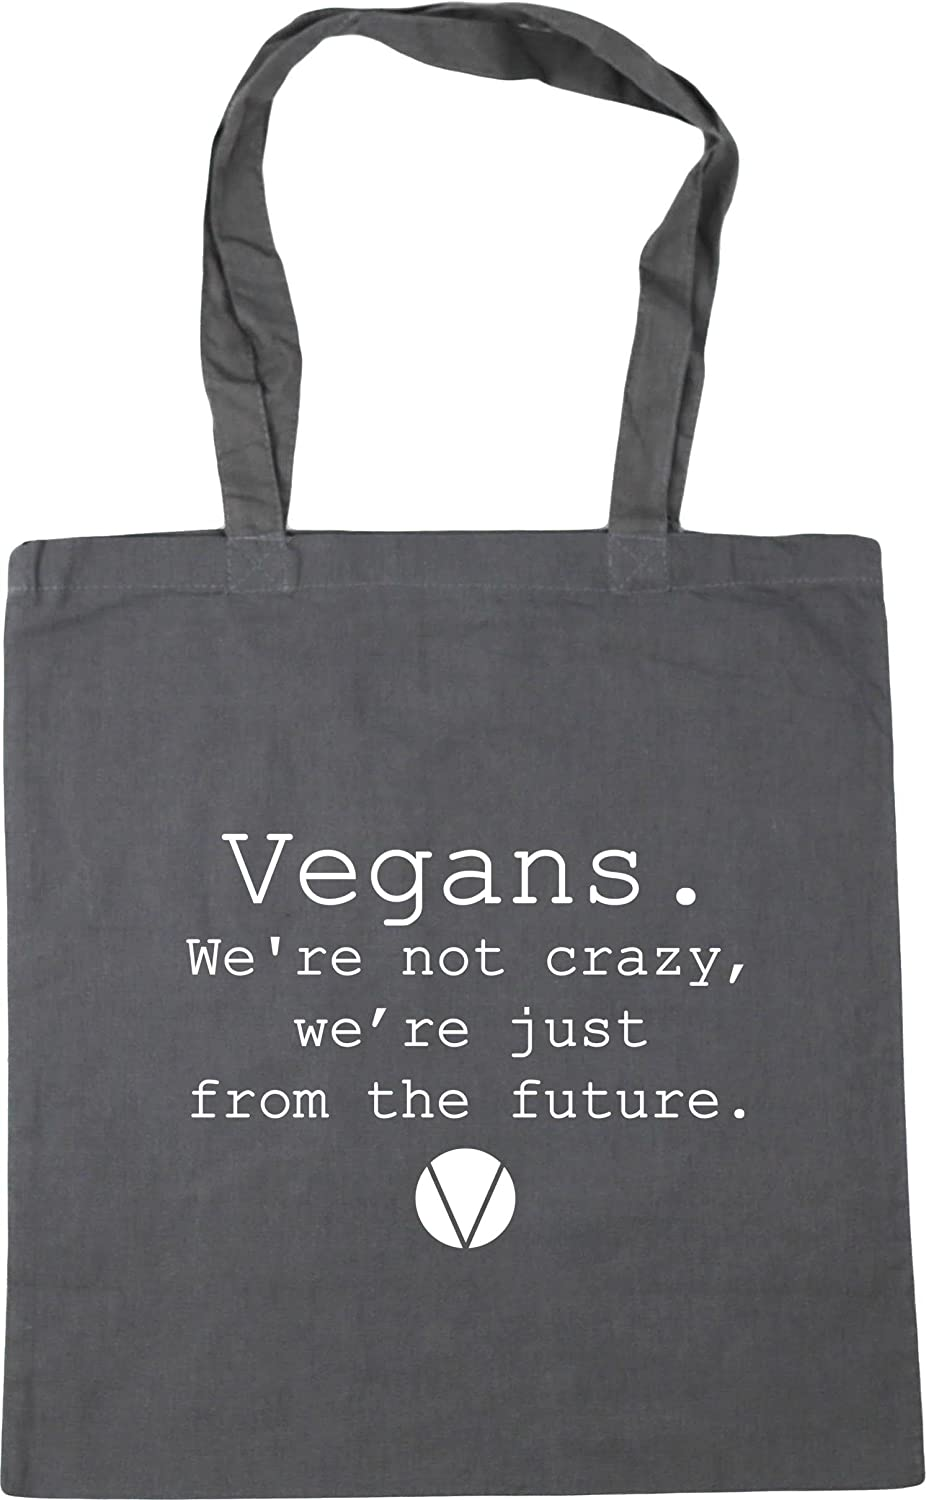 Tote Shopping Gym Beach Bag 42cm Just From The Future We/'re Not Crazy Vegans